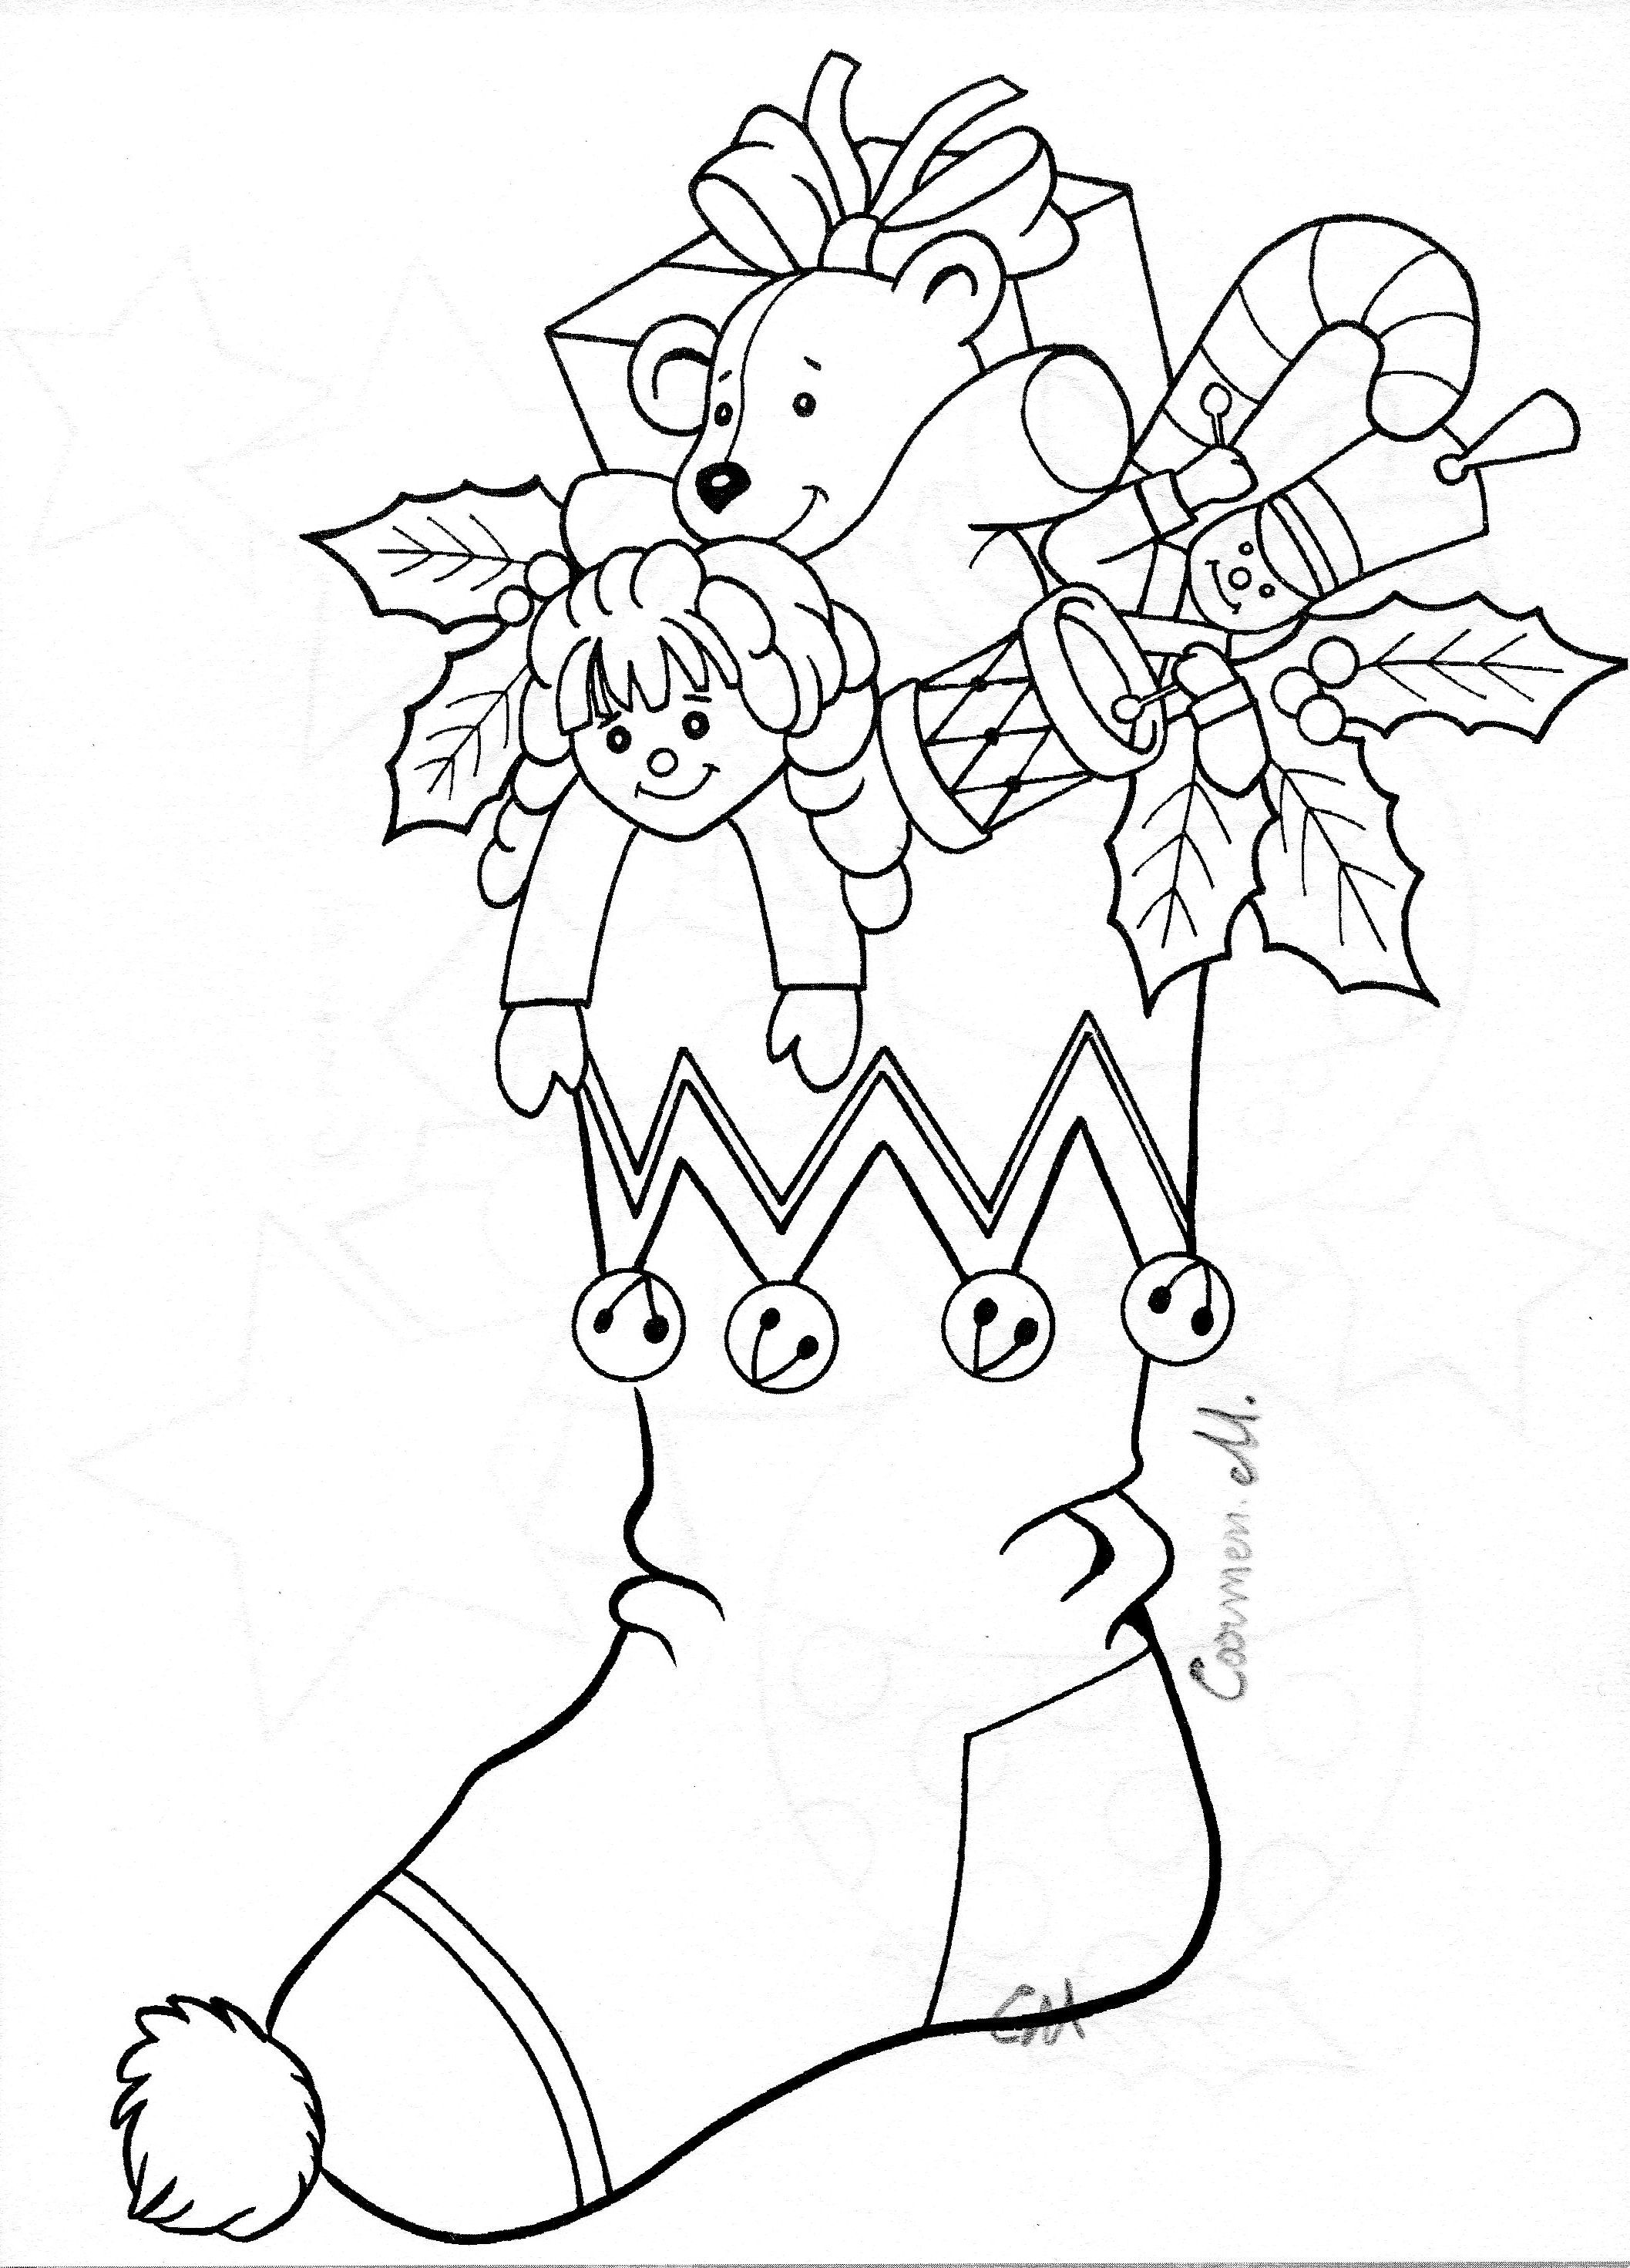 Christmas stocking colouring. Christmas coloring pages